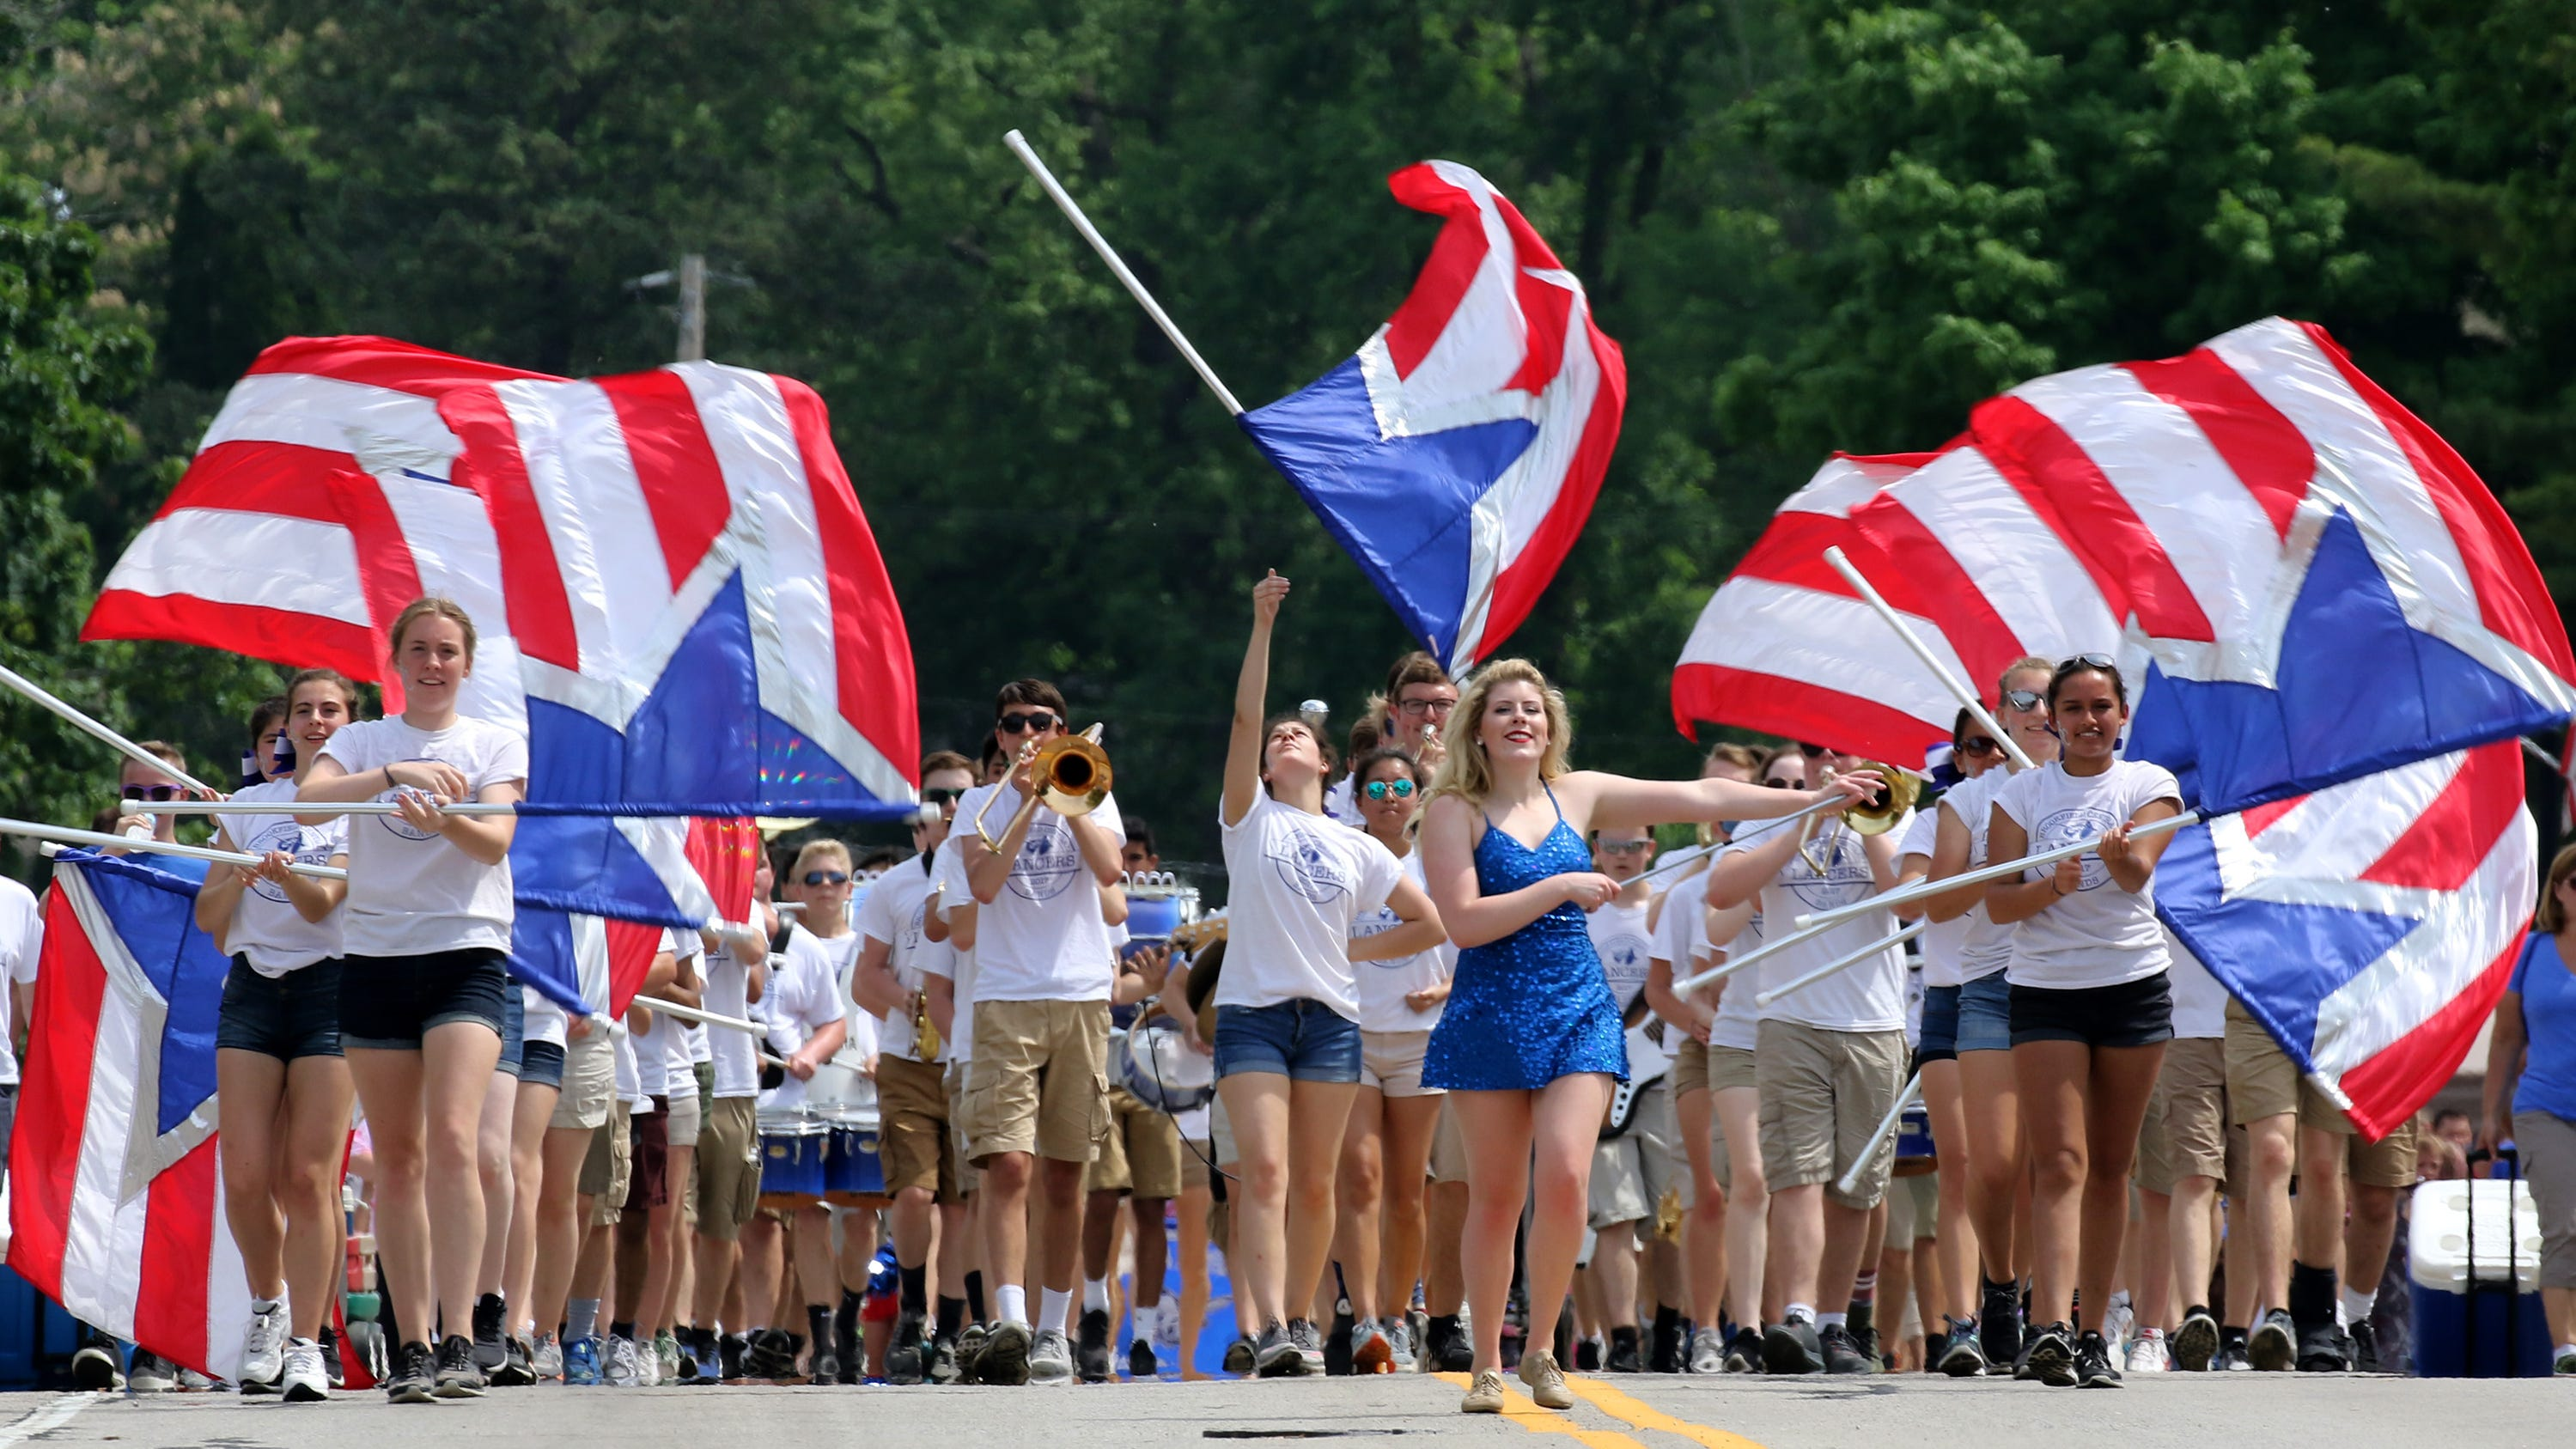 The Brookfield Central High School Marching Band performs along Watertown Plank Road during the 71st Elm Grove Memorial Day parade hosted by the Elm Grove Junior Guild and American Legion Post 449.